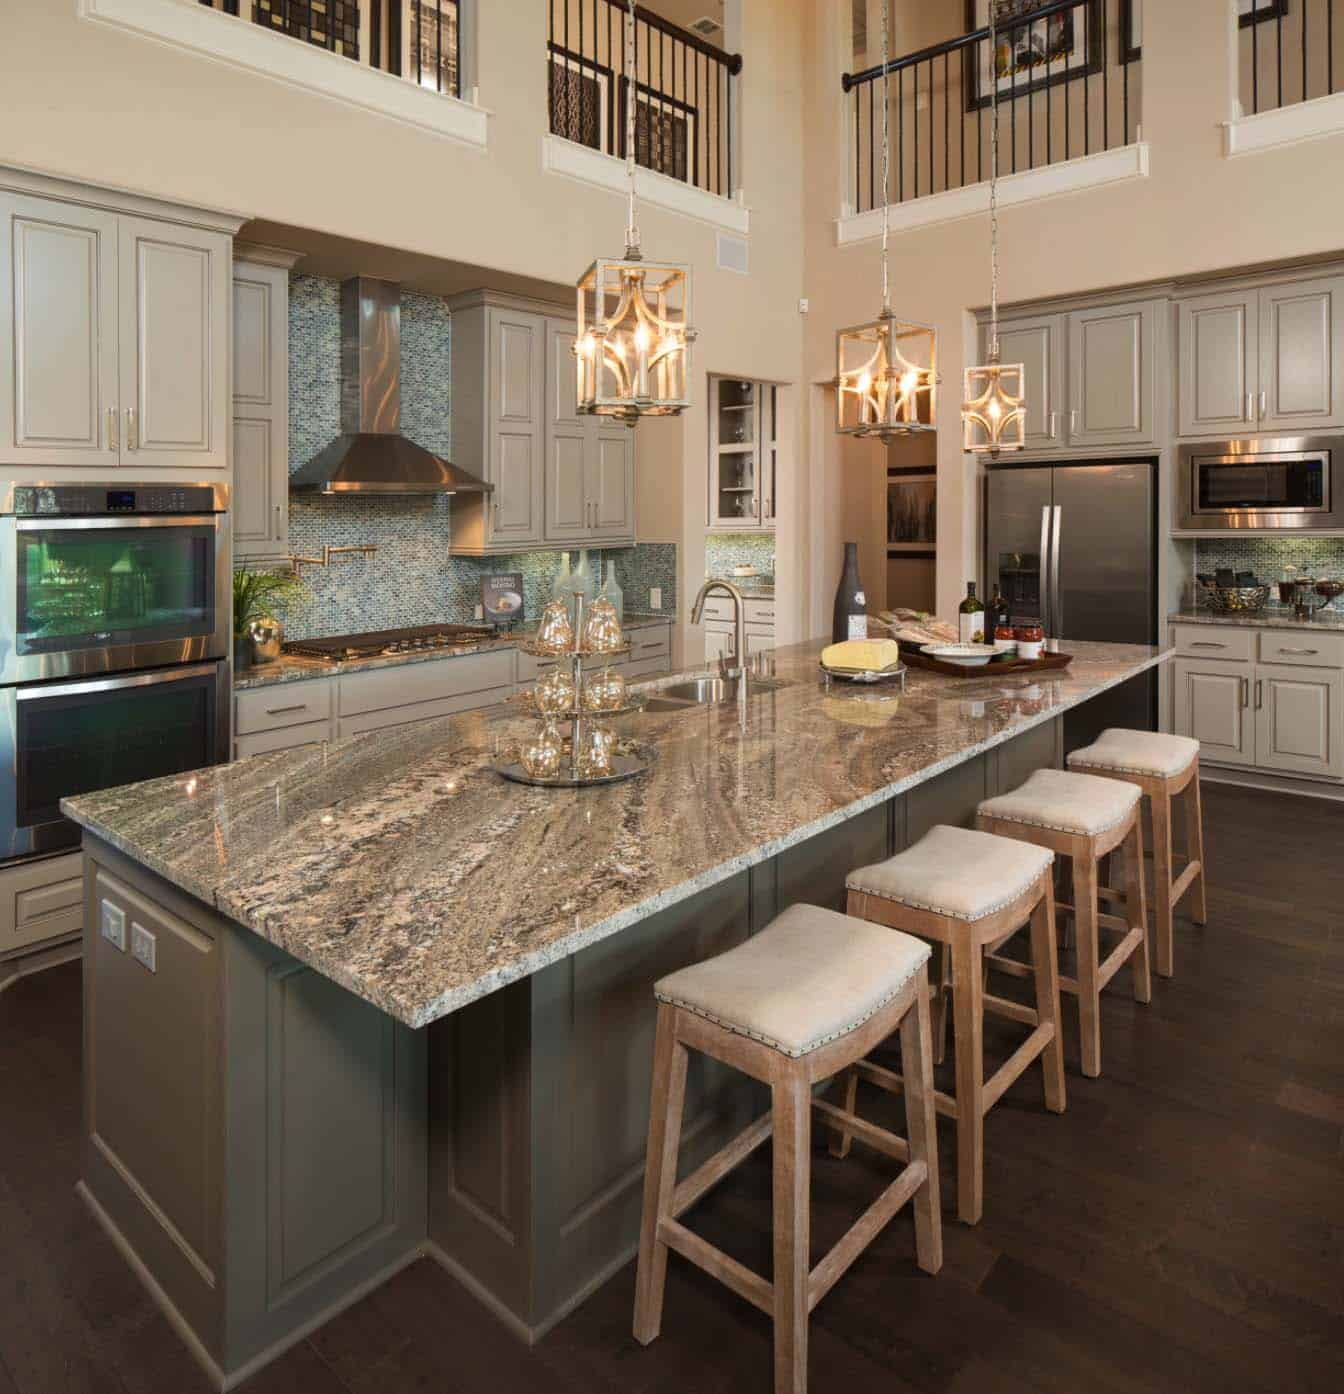 30 brilliant kitchen island ideas that make a statement Kitchen island plans